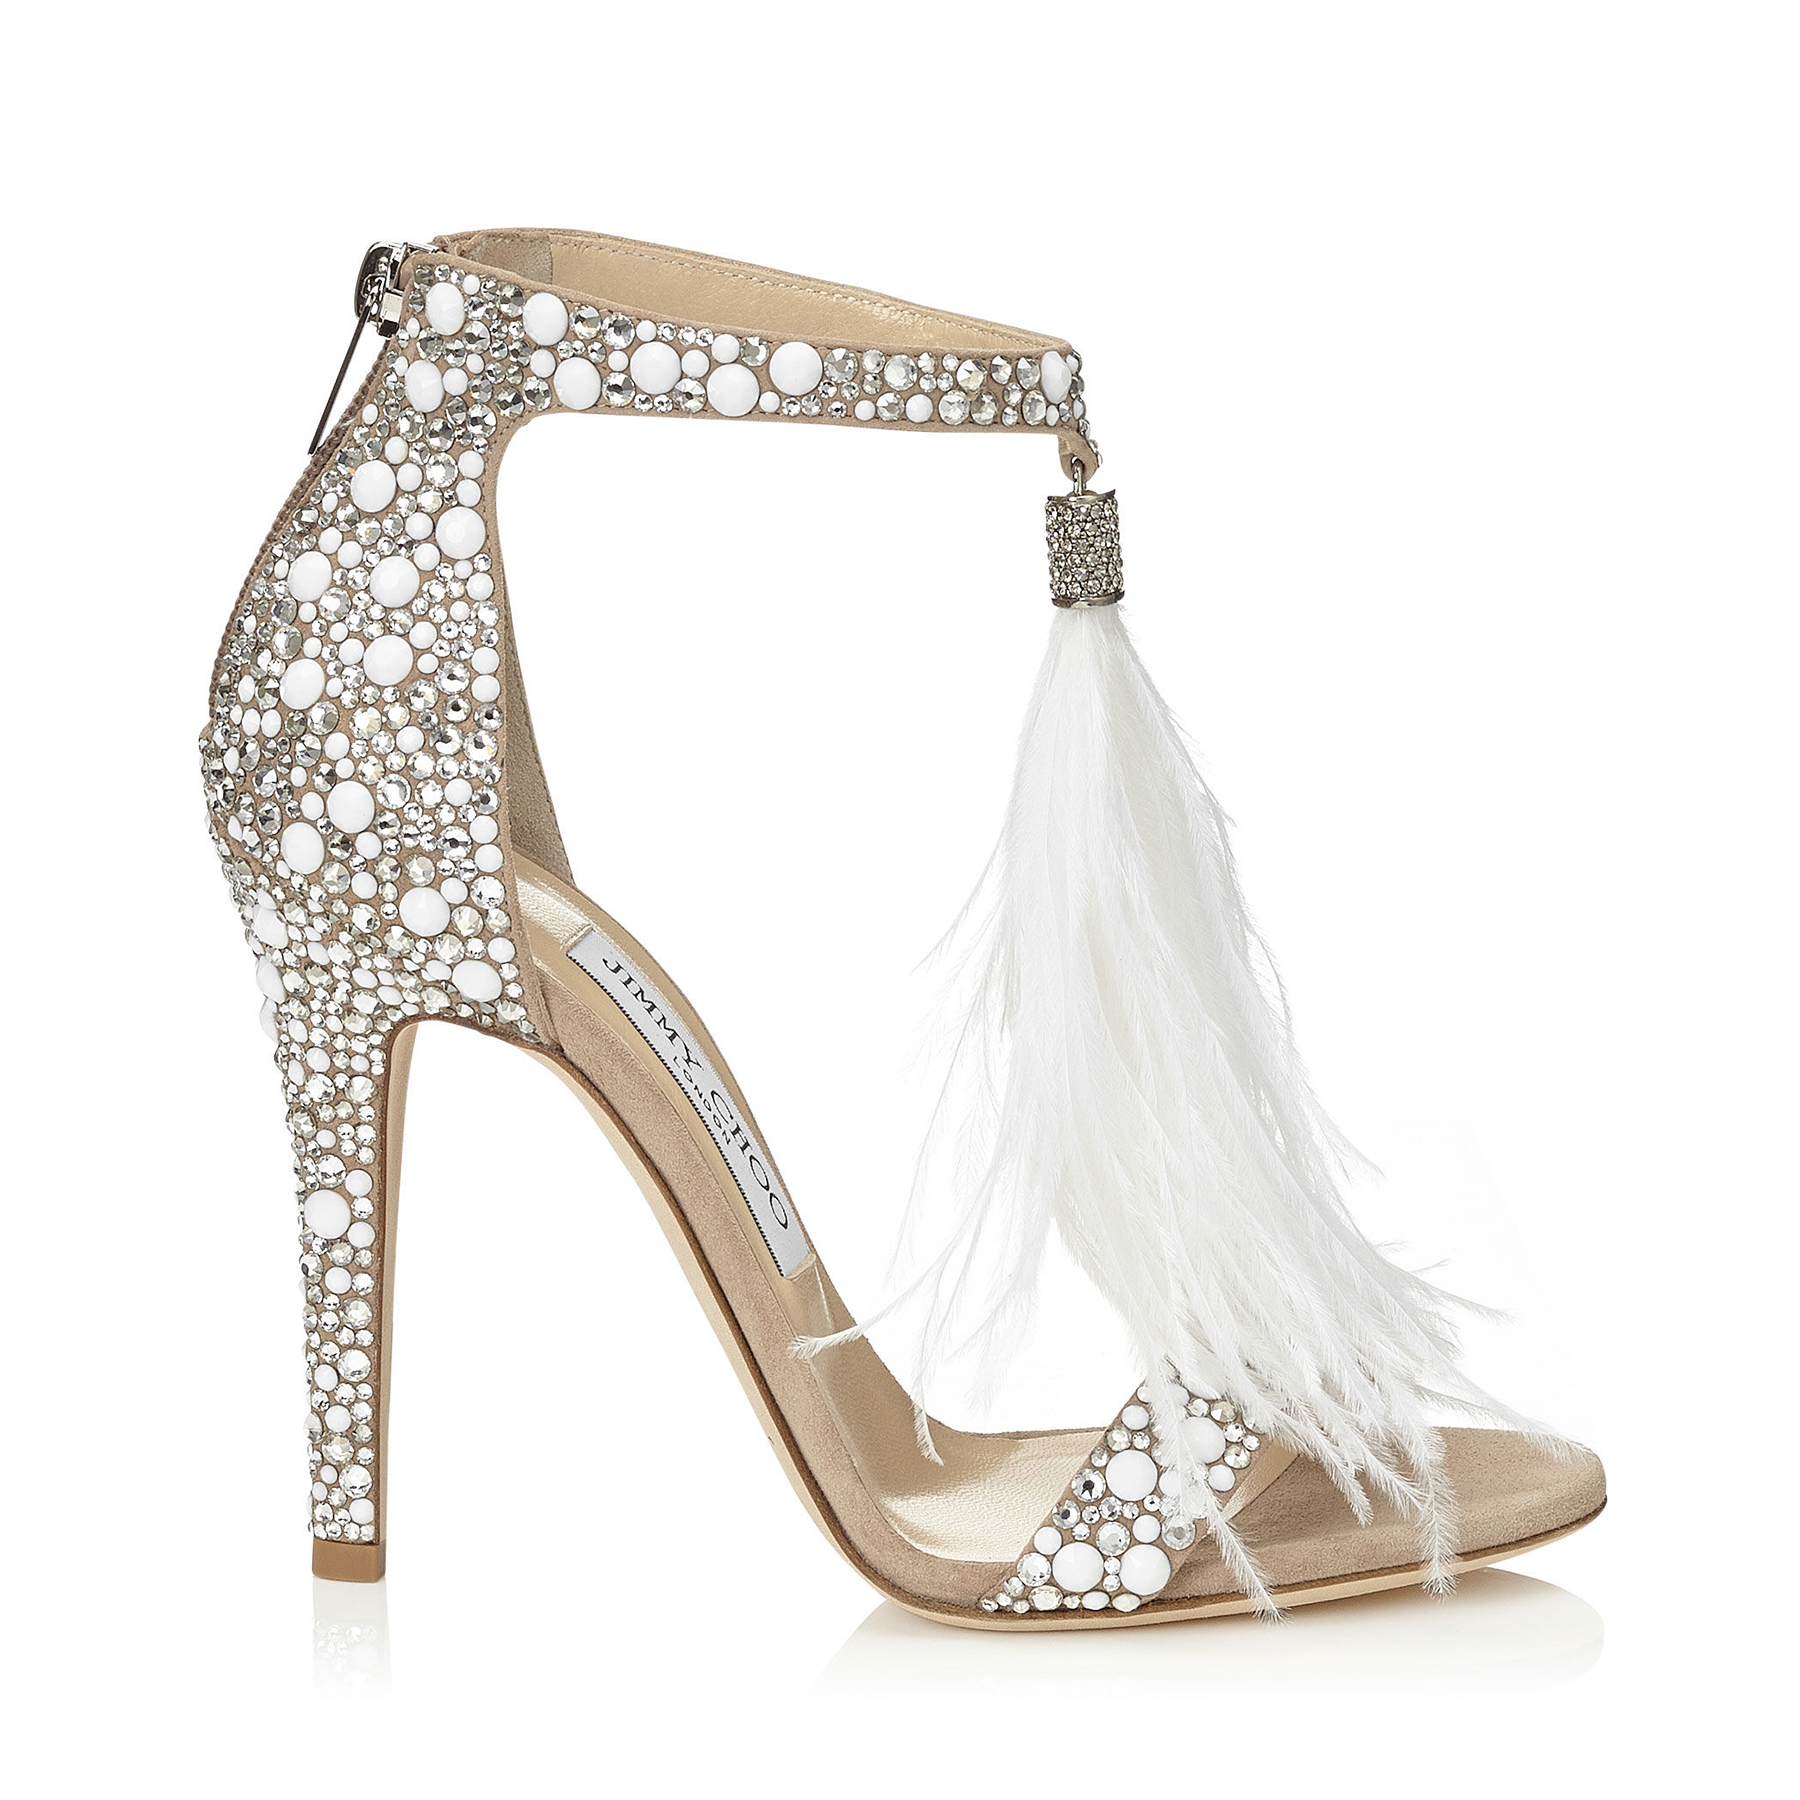 4c06ff648d6a White Suede and Hot Fix Crystal Embellished Sandals with an Ostrich Feather  Tassel